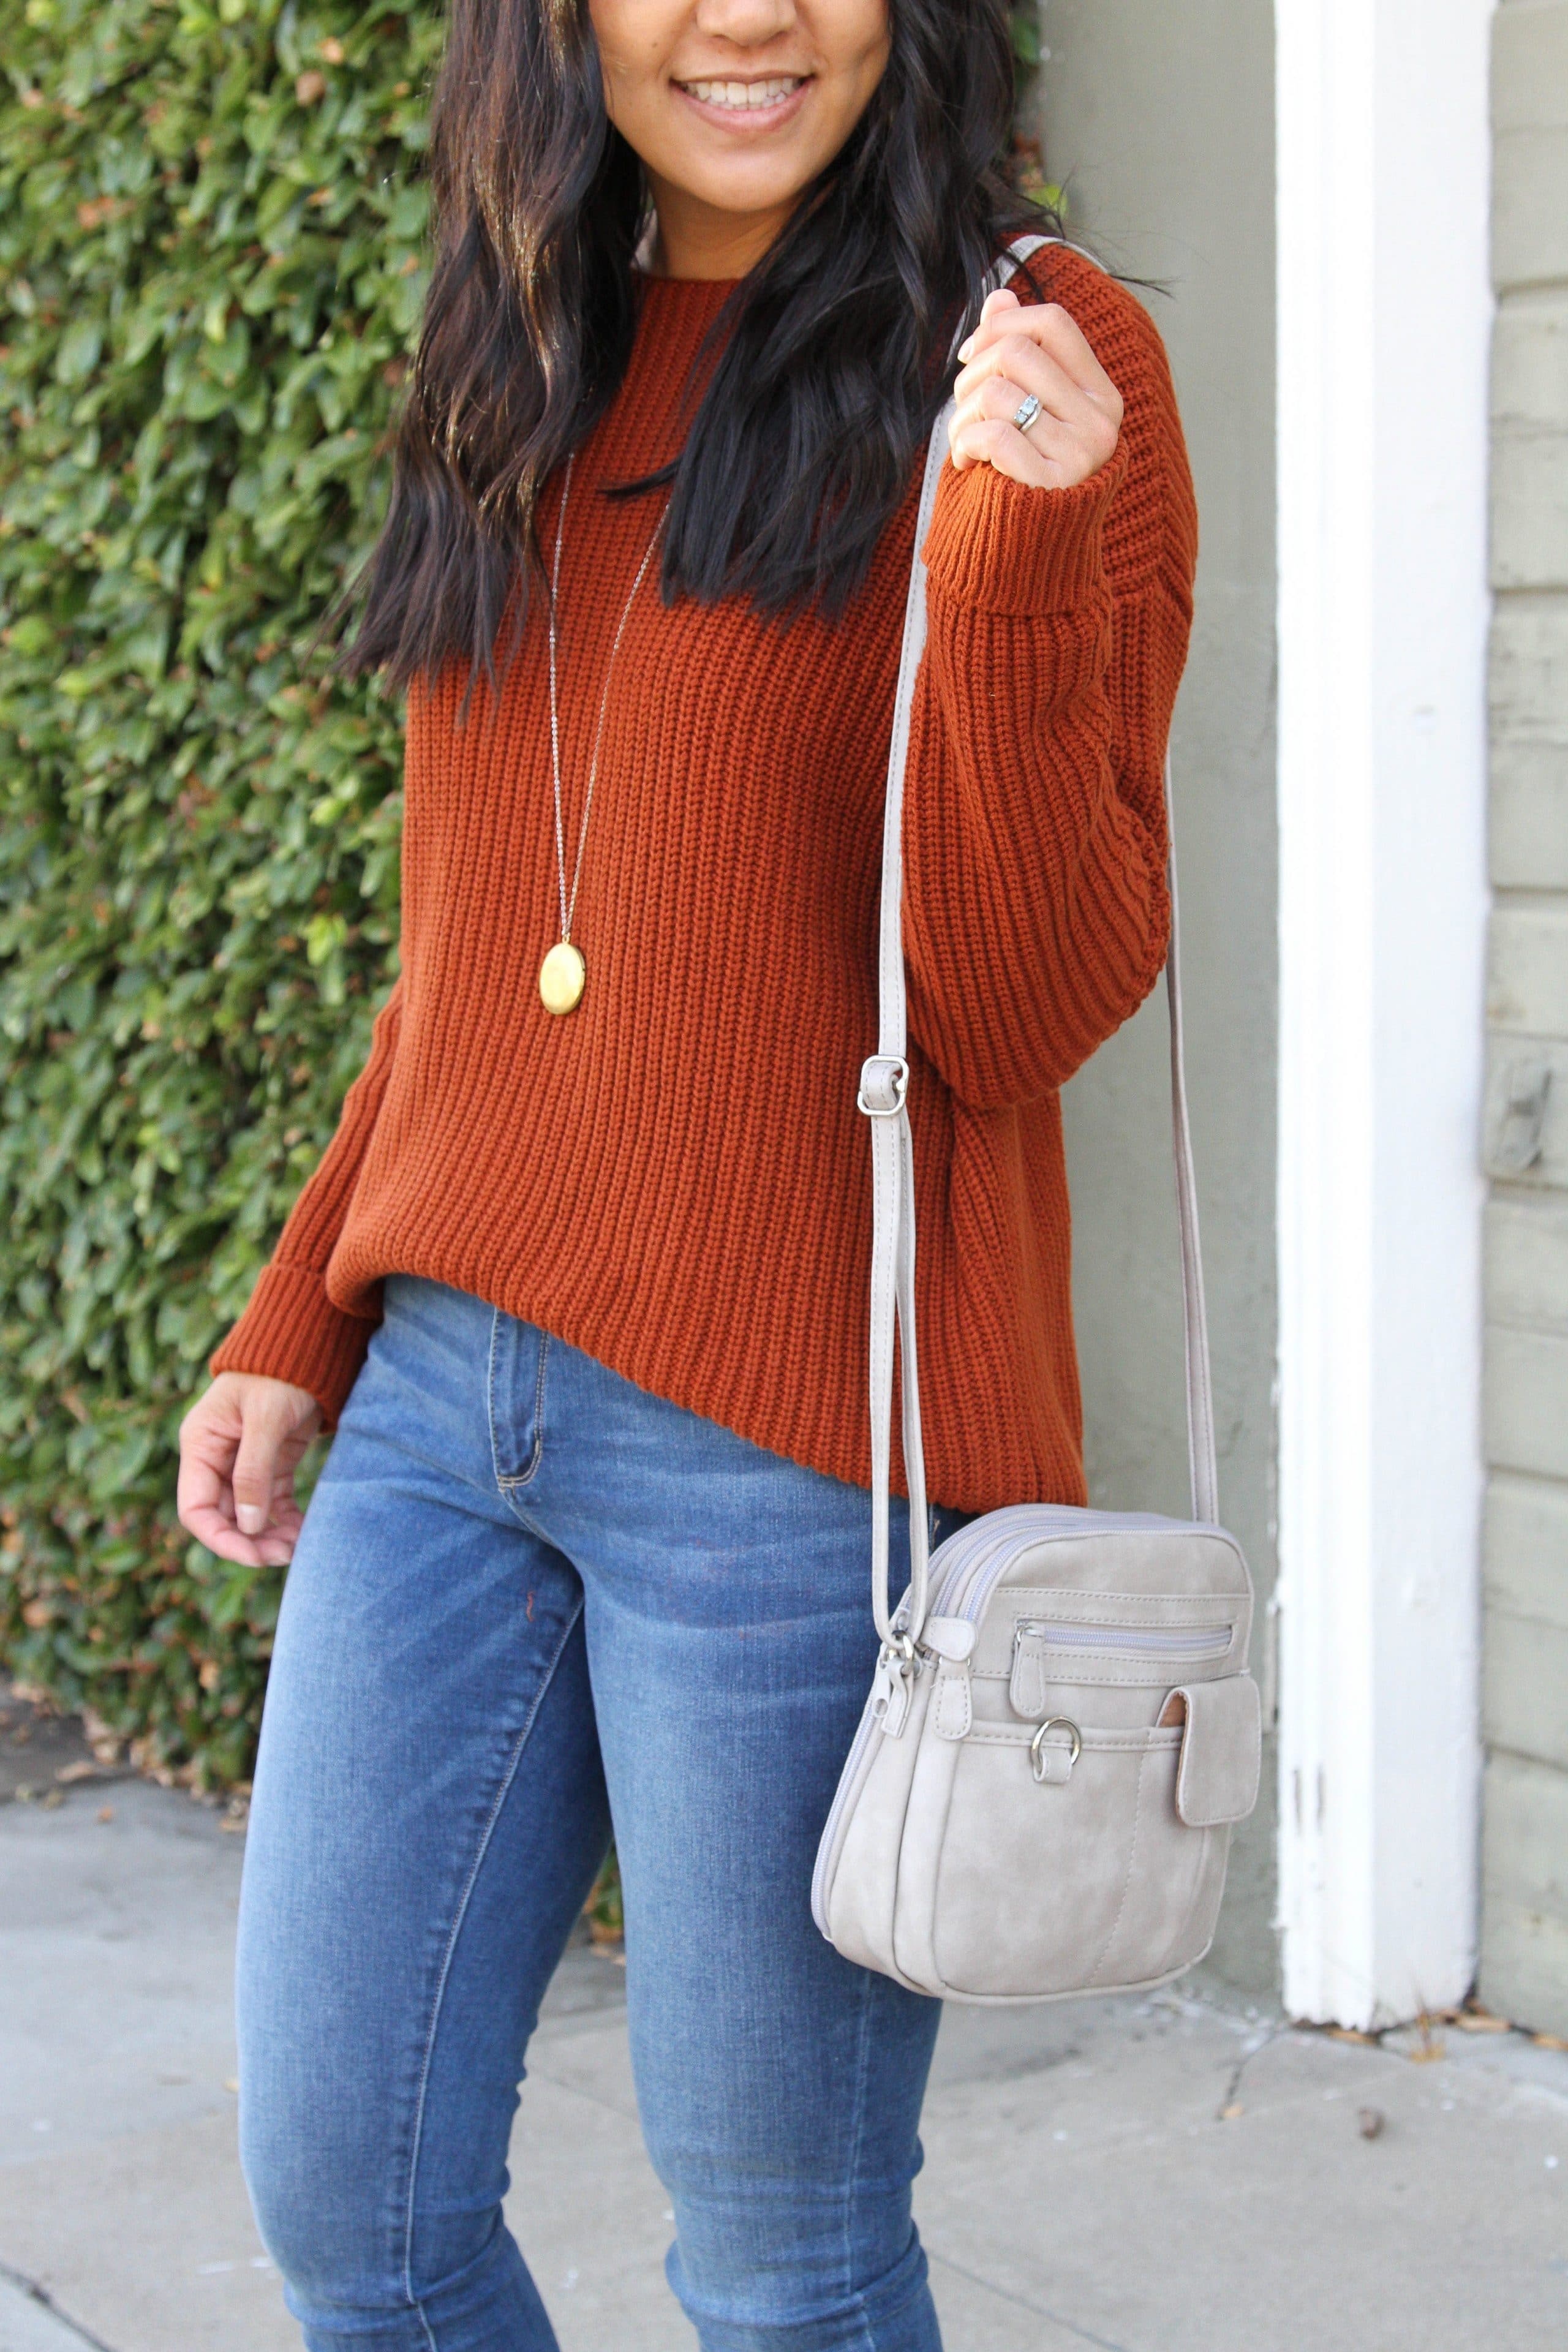 taupe booties + rust orange sweater + skinny jeans + grey purse